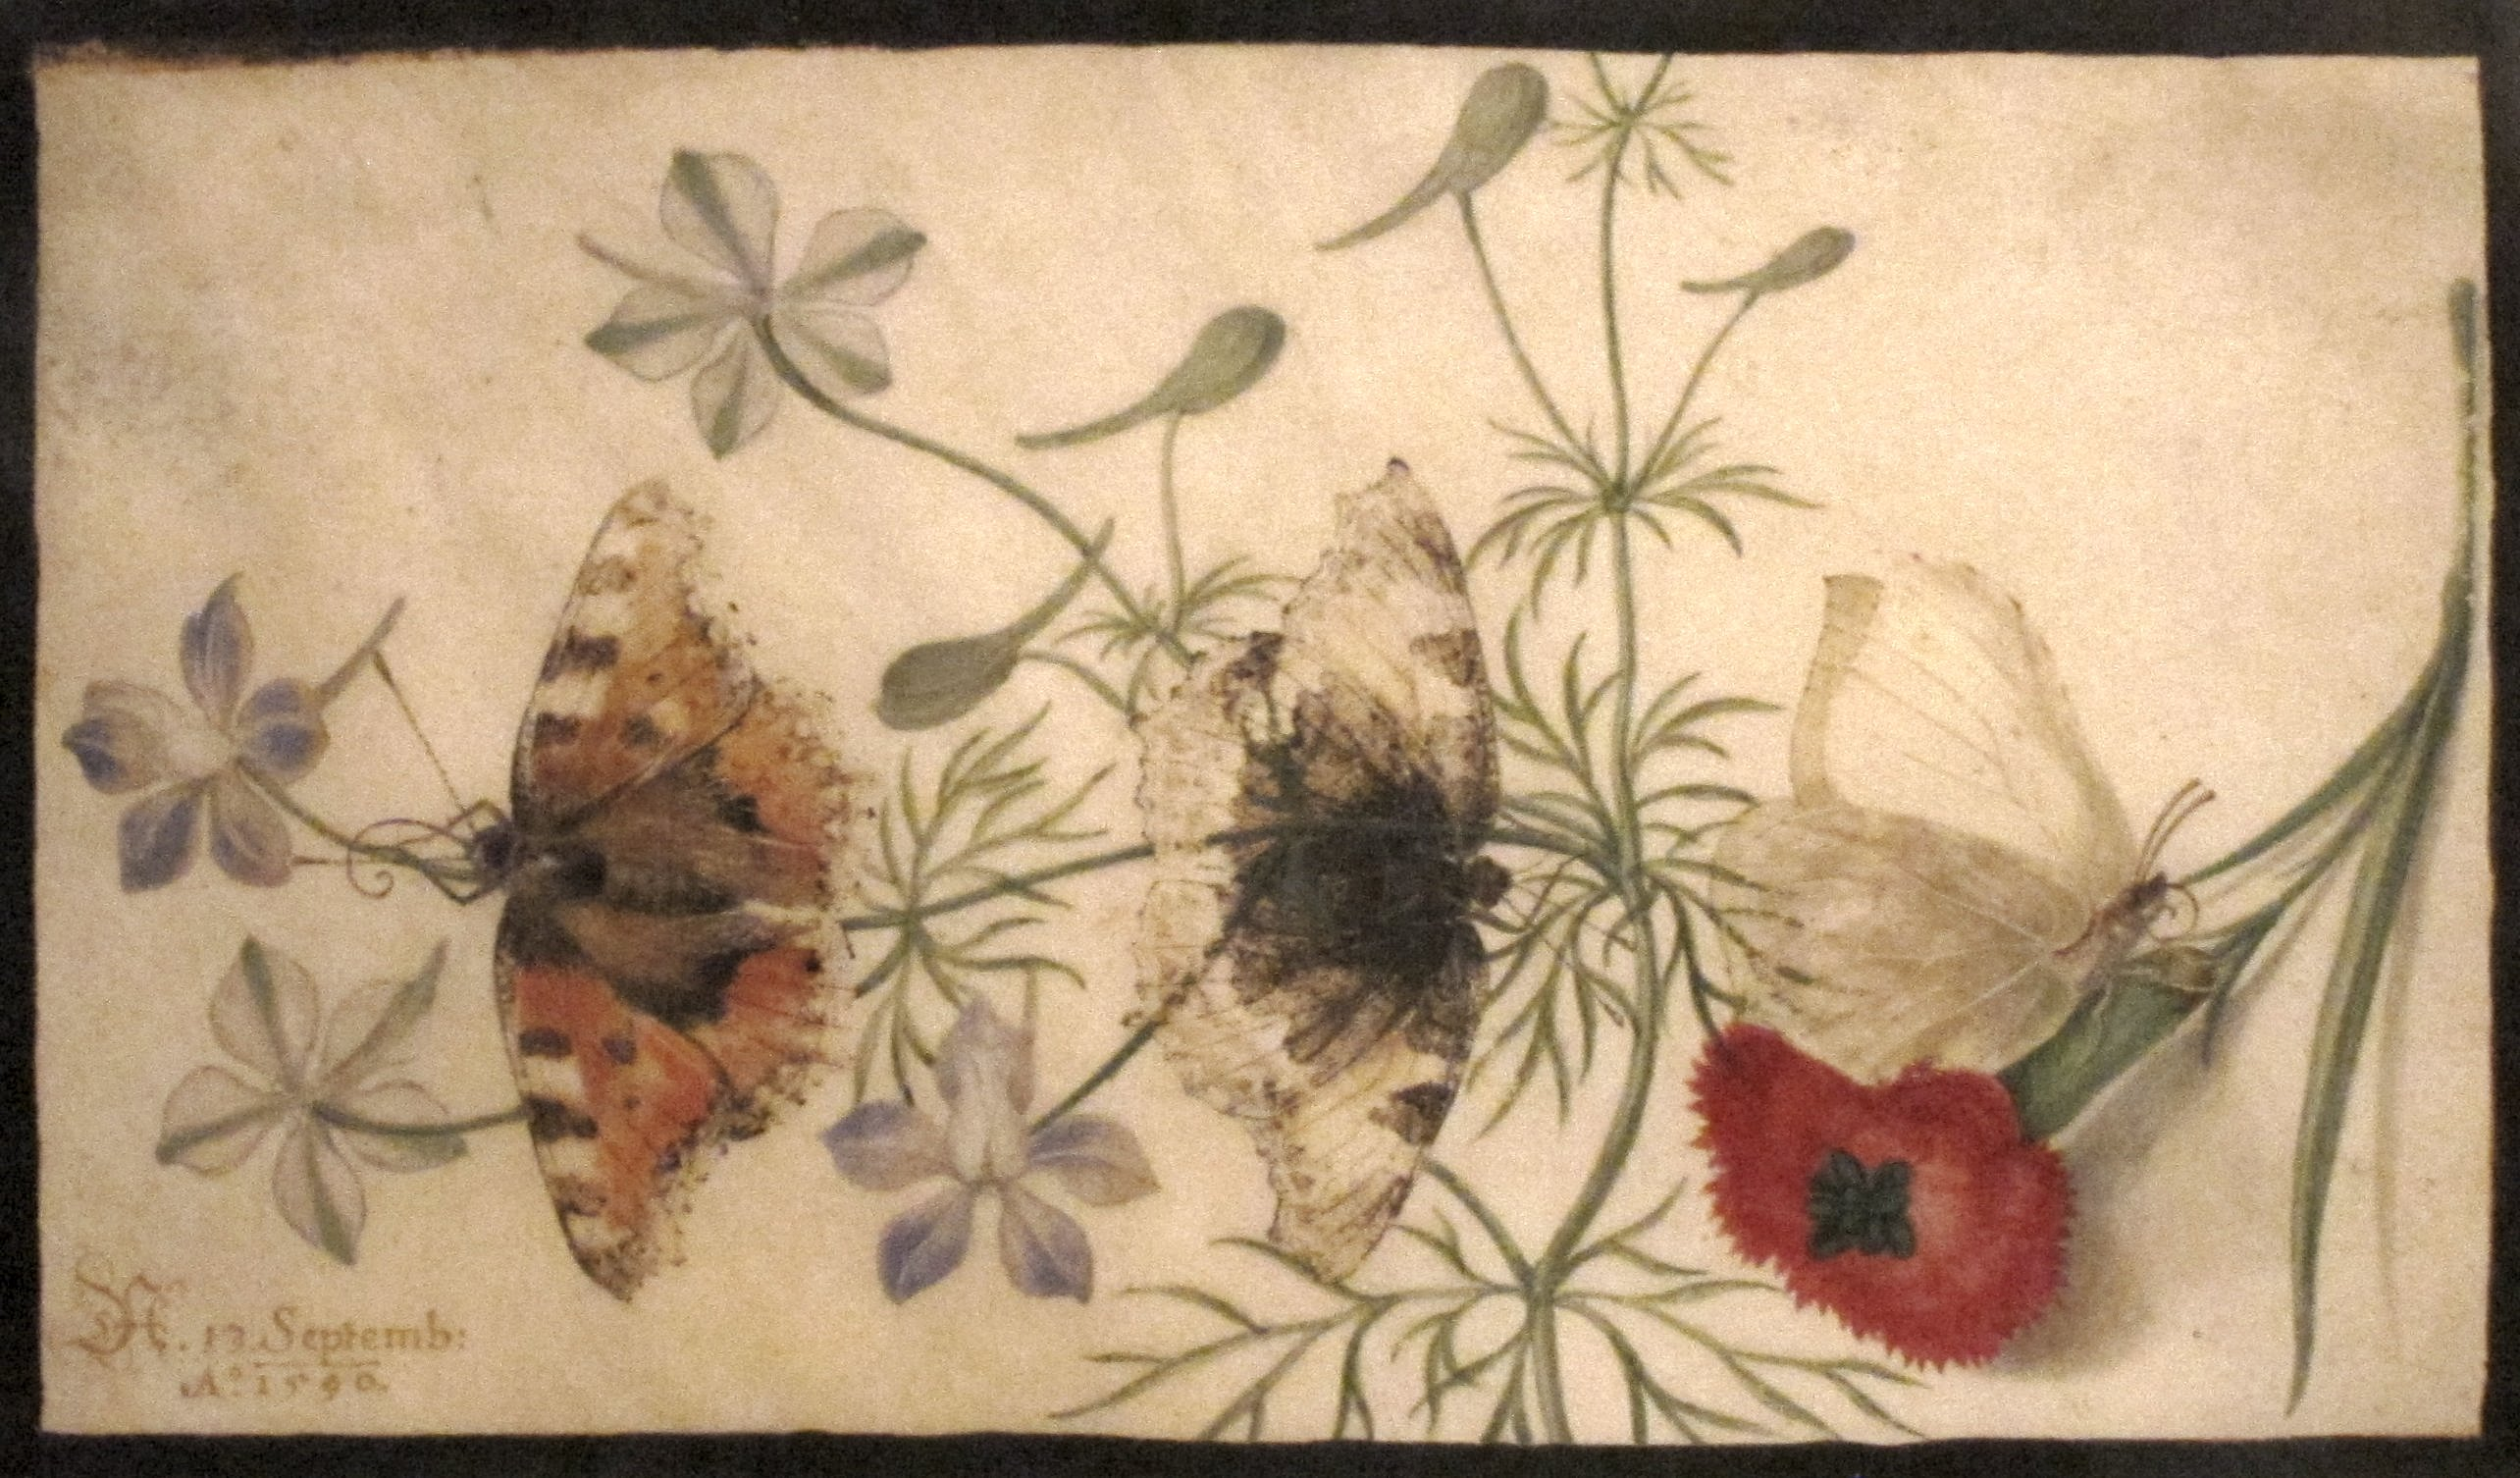 History of watercolor art - File Studies Of Flowers And Butterflies Watercolor Painting On Parchment By Joris Hoefnagel